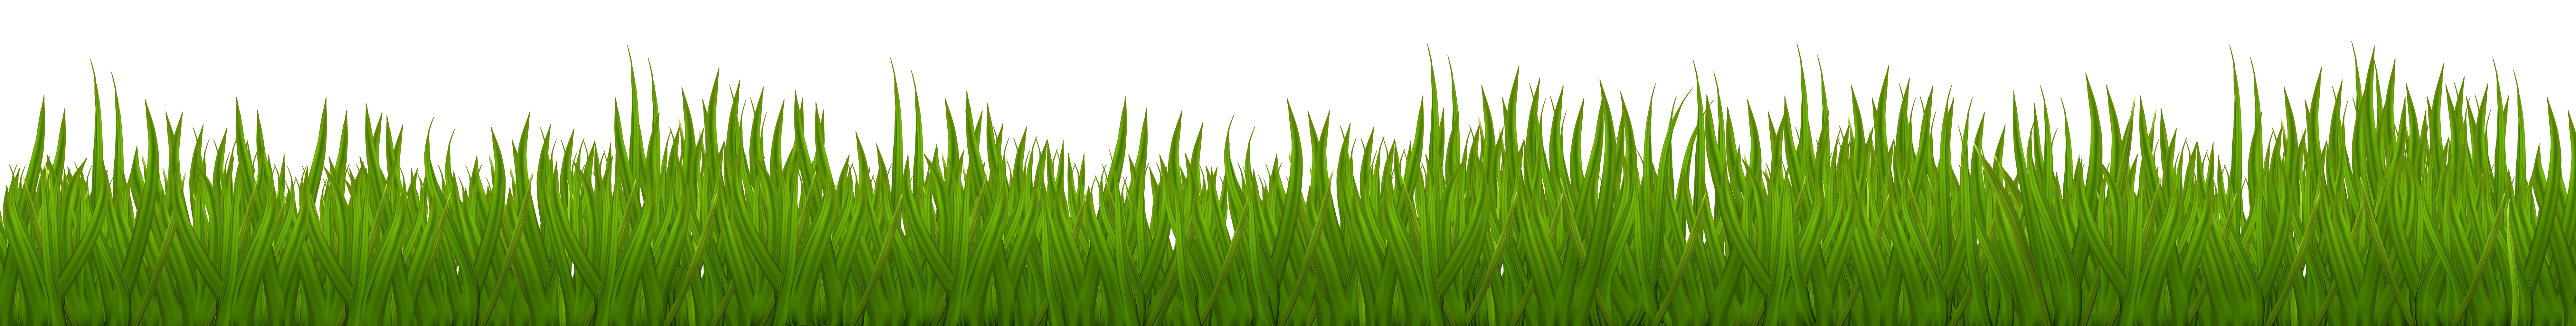 Clip art image clipart. Grass vector png